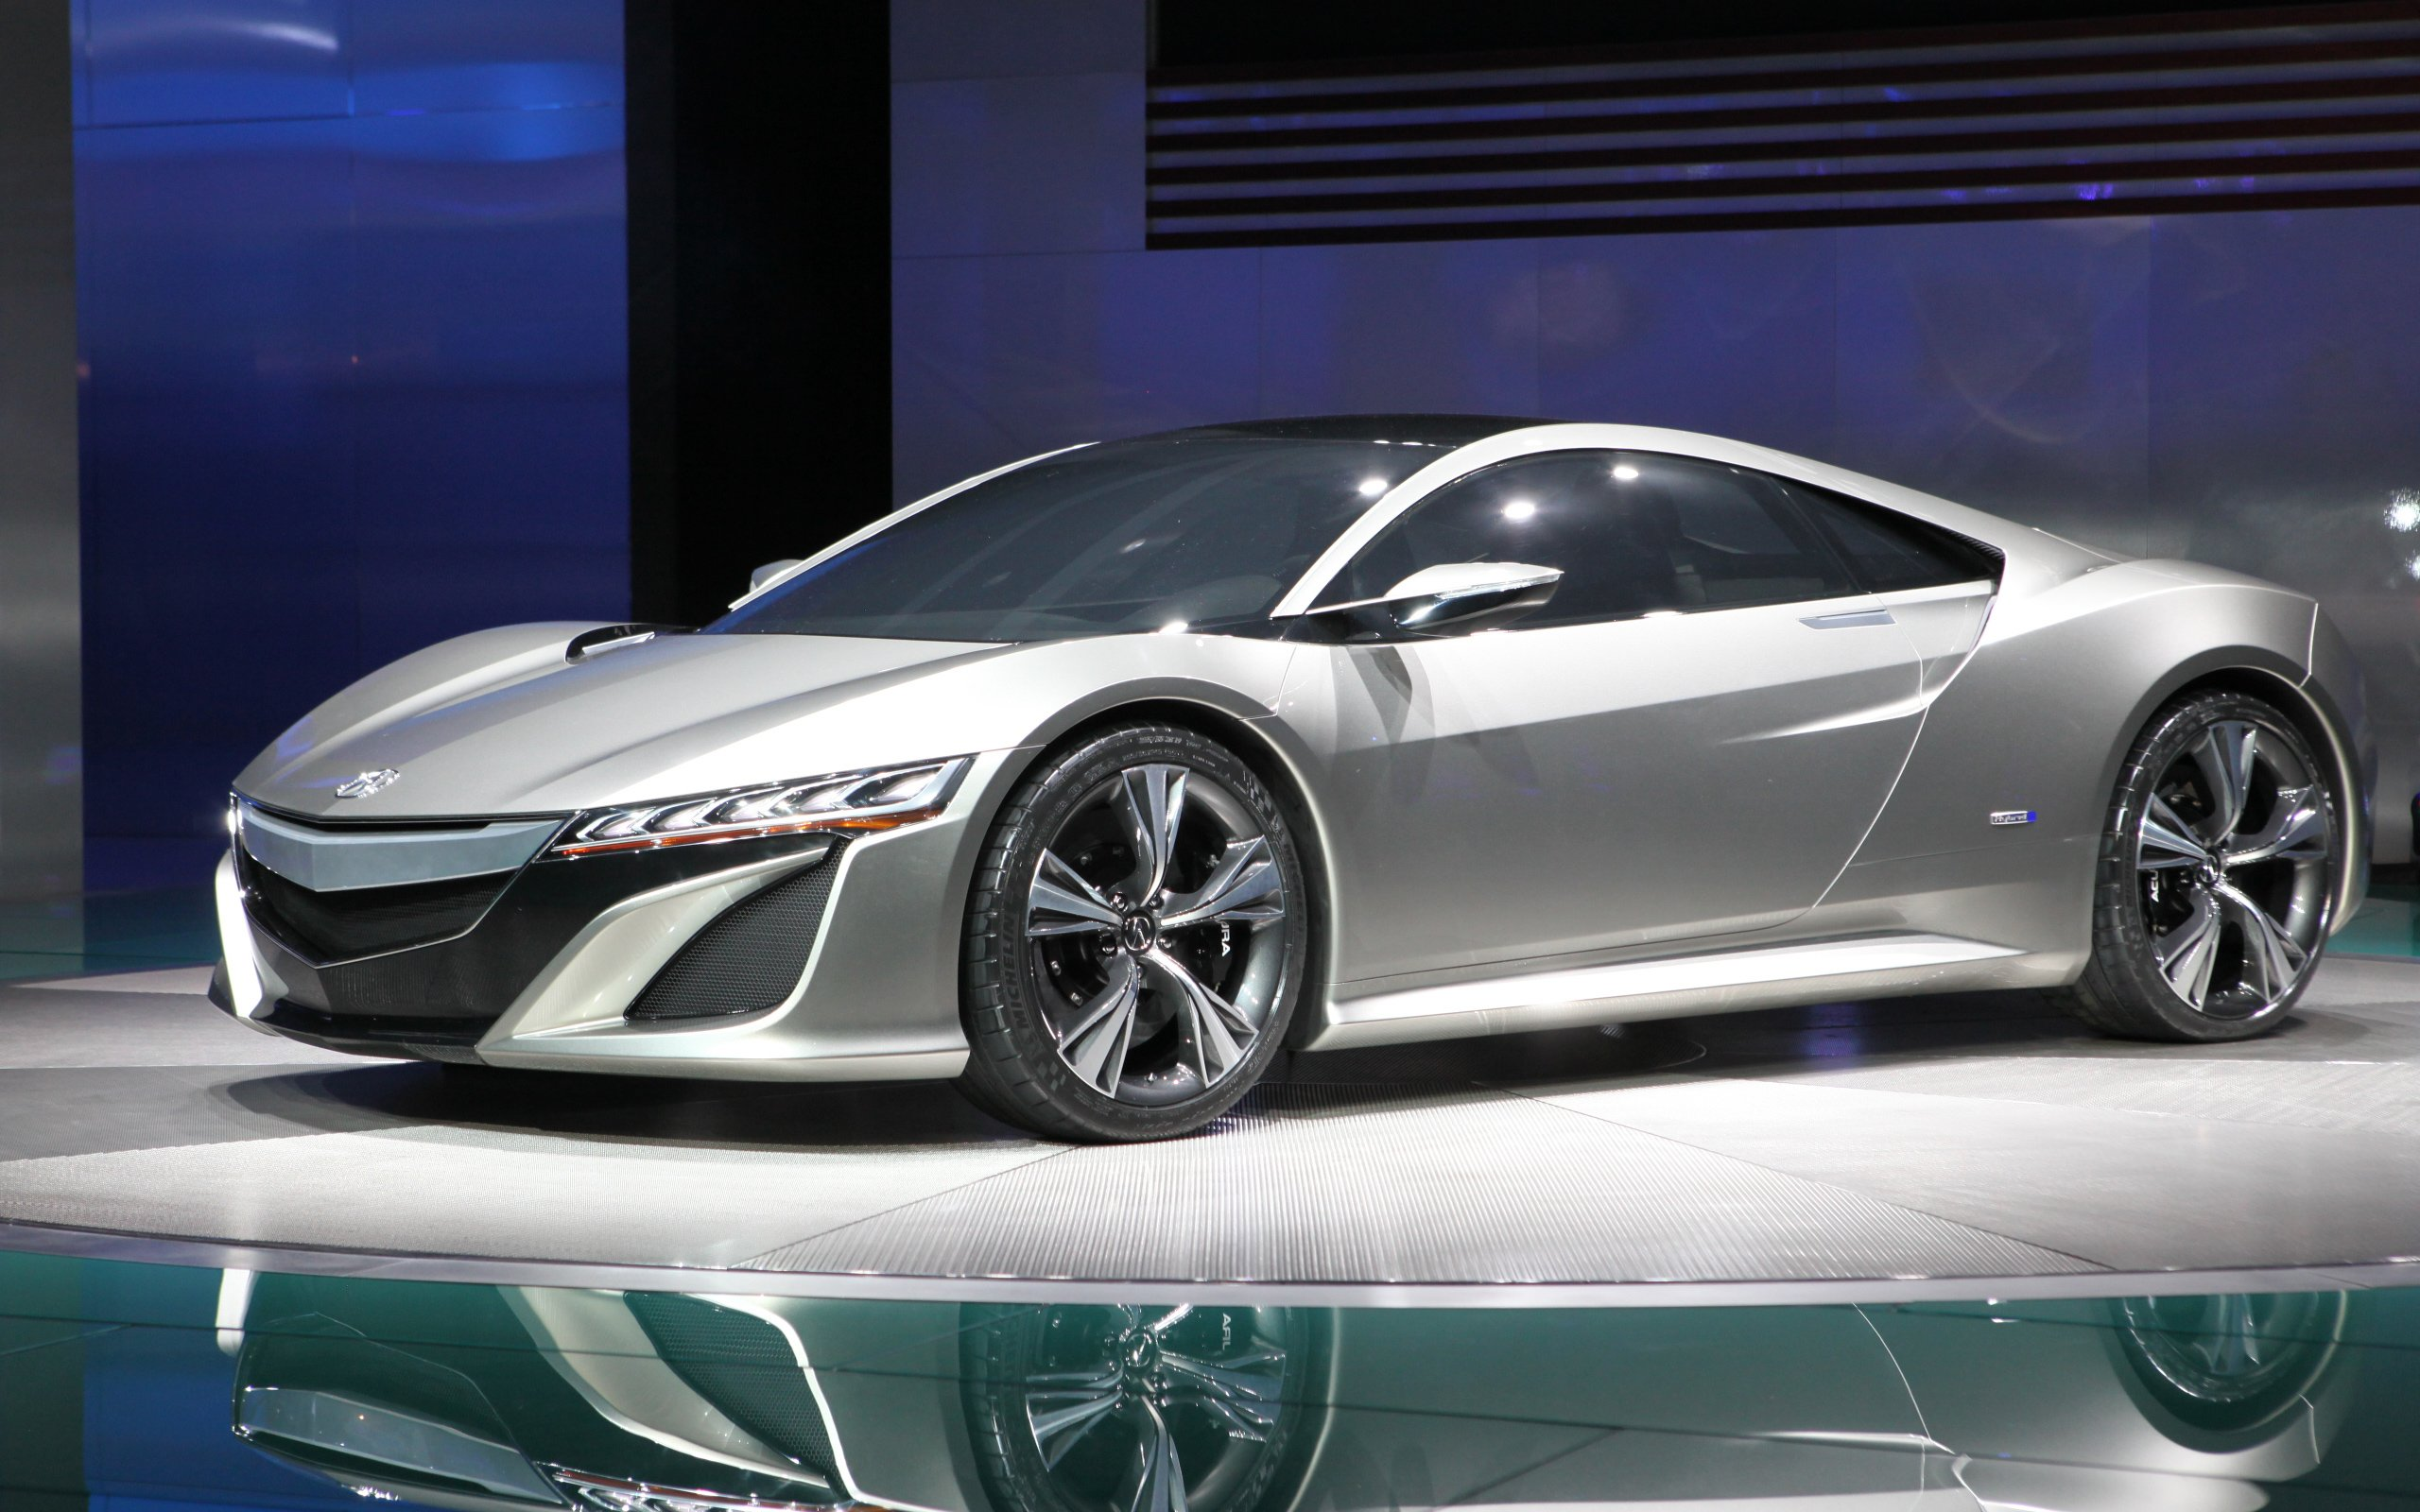 New Acura NSX Concept MGM Wallpaper HD Car Wallpapers 2560x1600